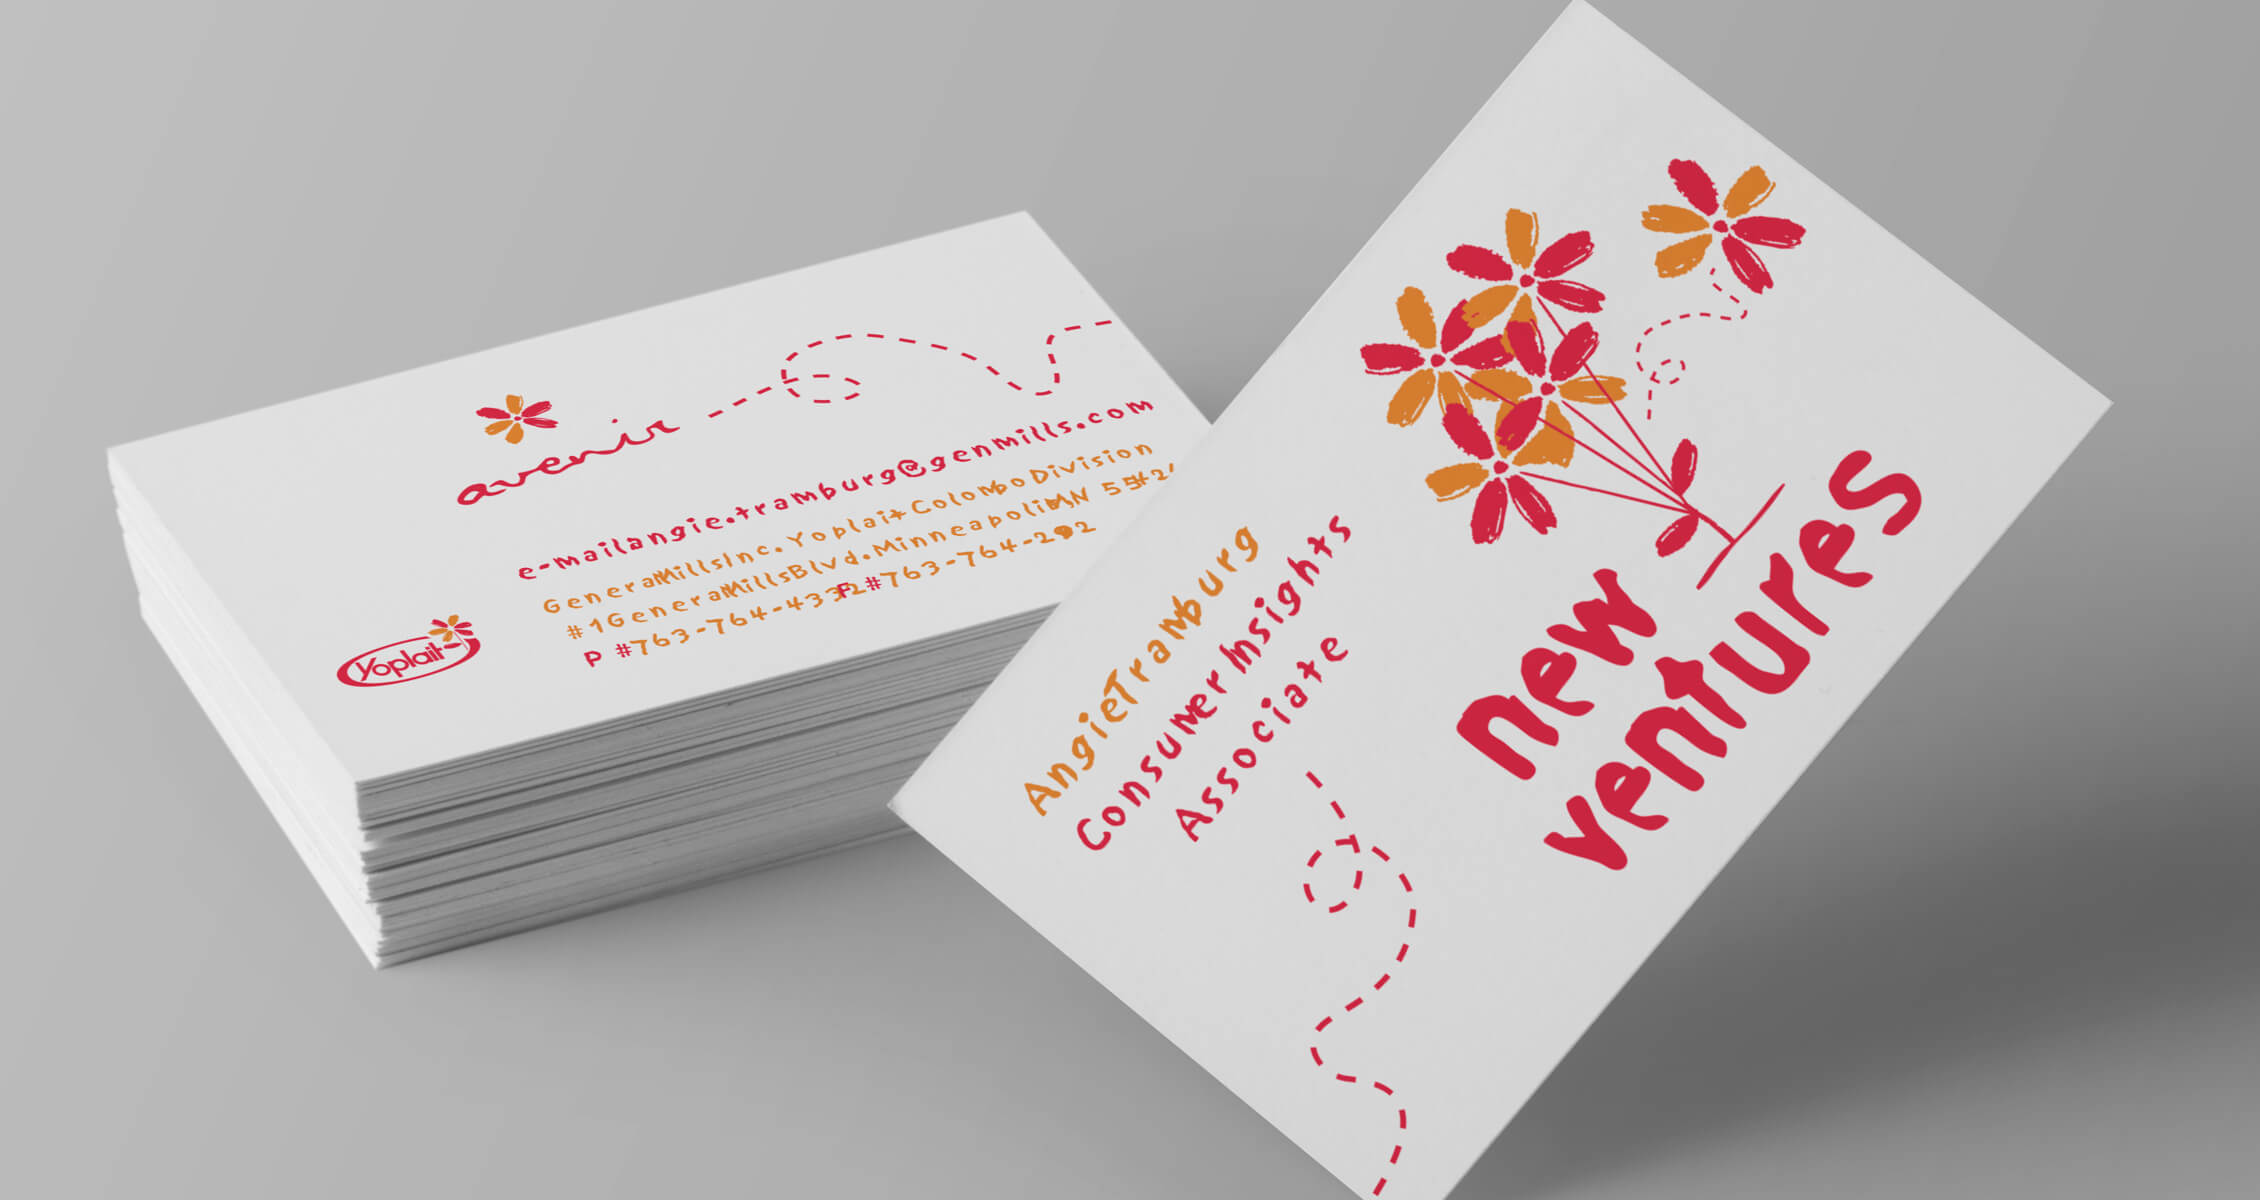 yoplait new ventures business cards image